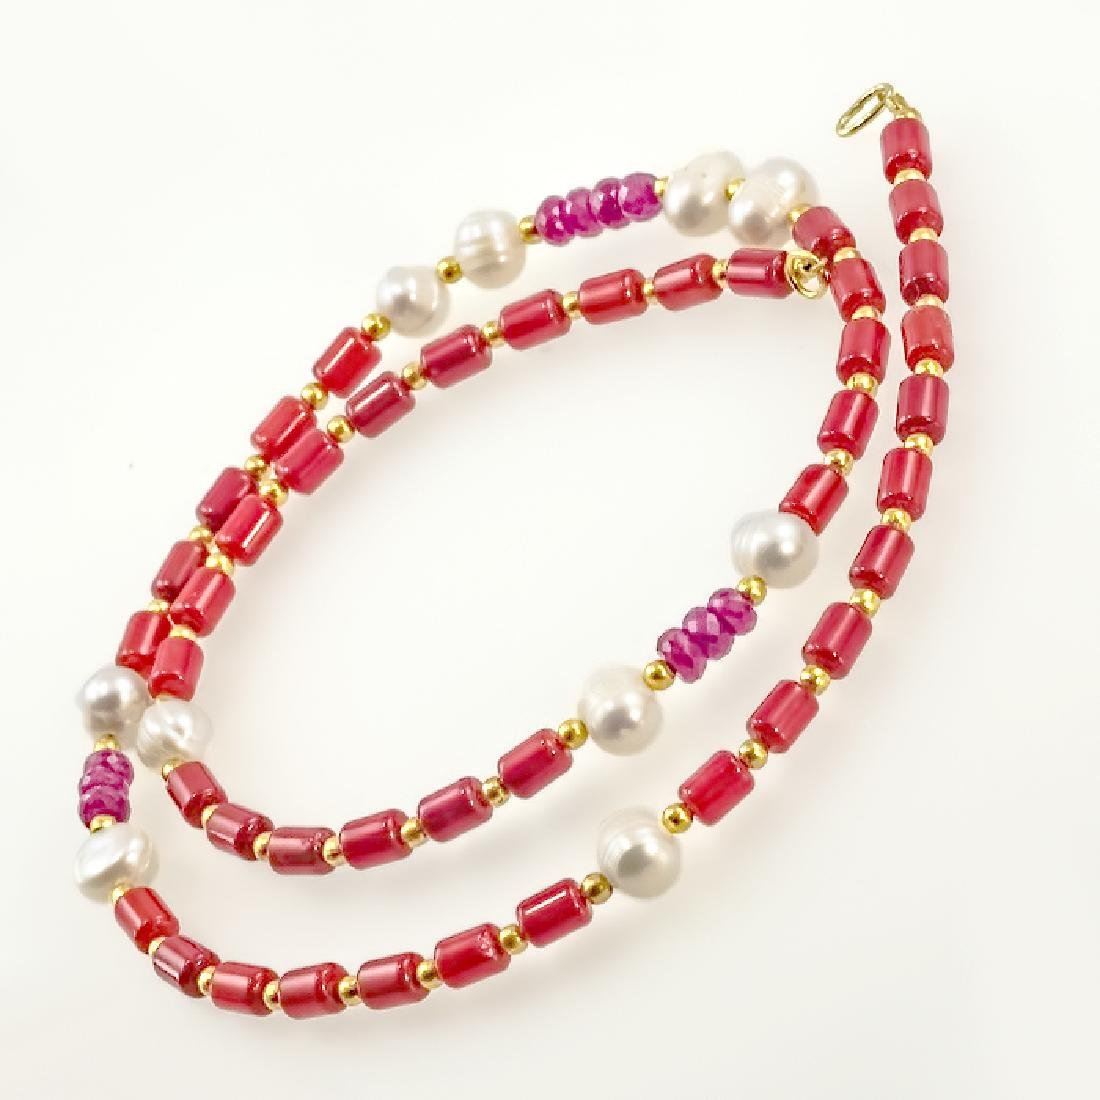 Coral Necklace with Pearls and Rubies 9.8ctw - 2